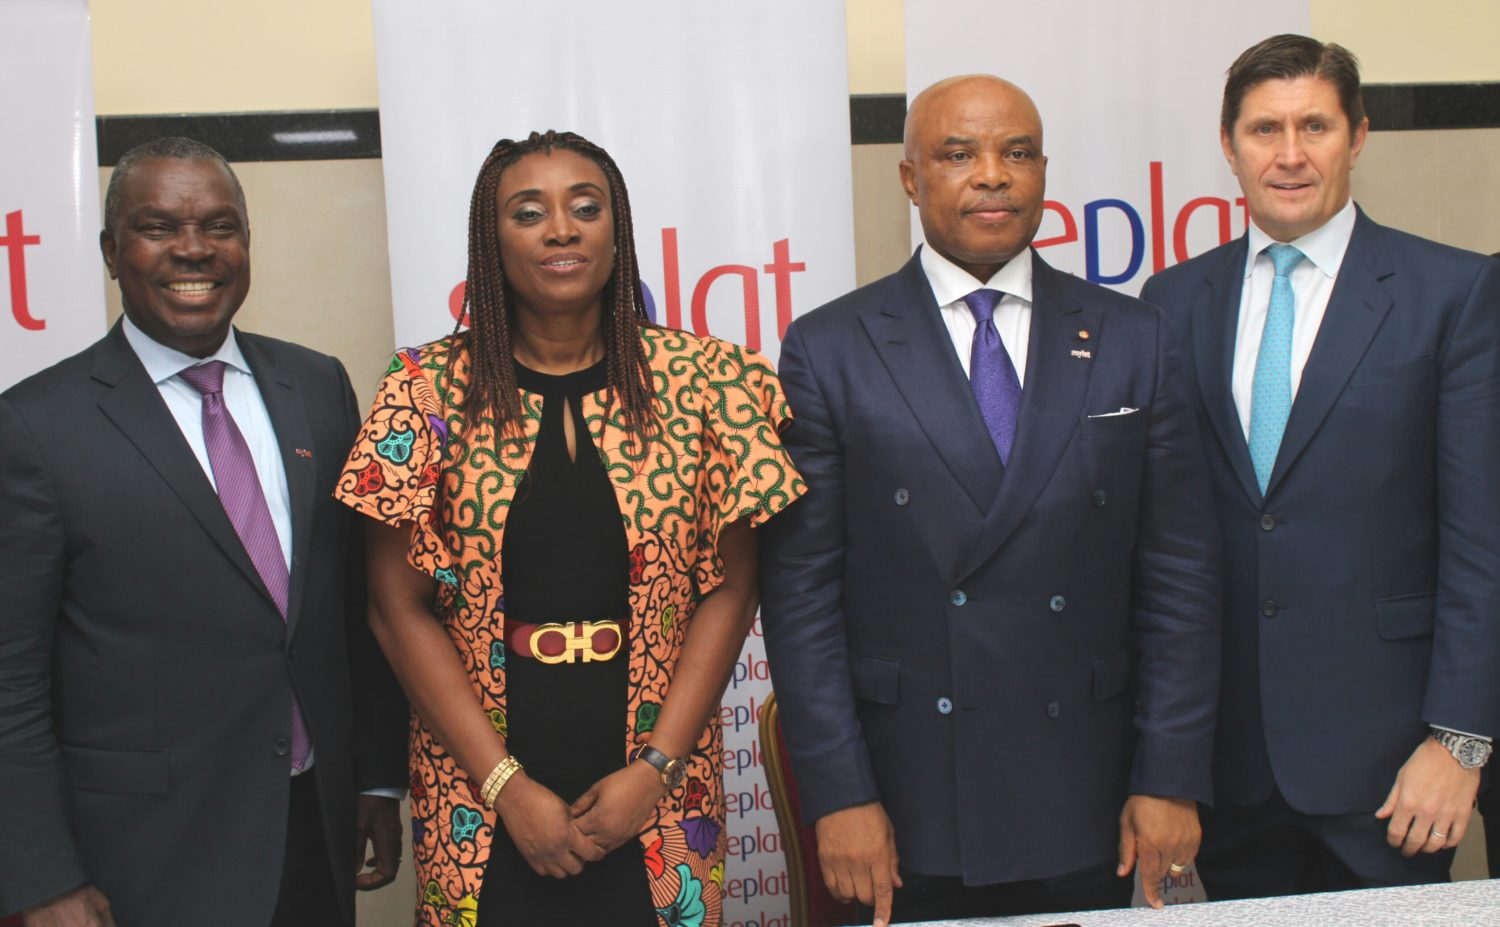 Pic 1 (16.43.47) L-R: Mr. Austin Avuru, Chief Executive Officer, Seplat Petroleum Development Company Plc; Company's Secretary, Mrs. Mirian Kachikwu; Dr. A.B.C. Orjiako, Chairman; Mr. Roger Brown, Chief Financial Officer, during the company's 6th Annual General Meeting held in Lagos, yesterday.